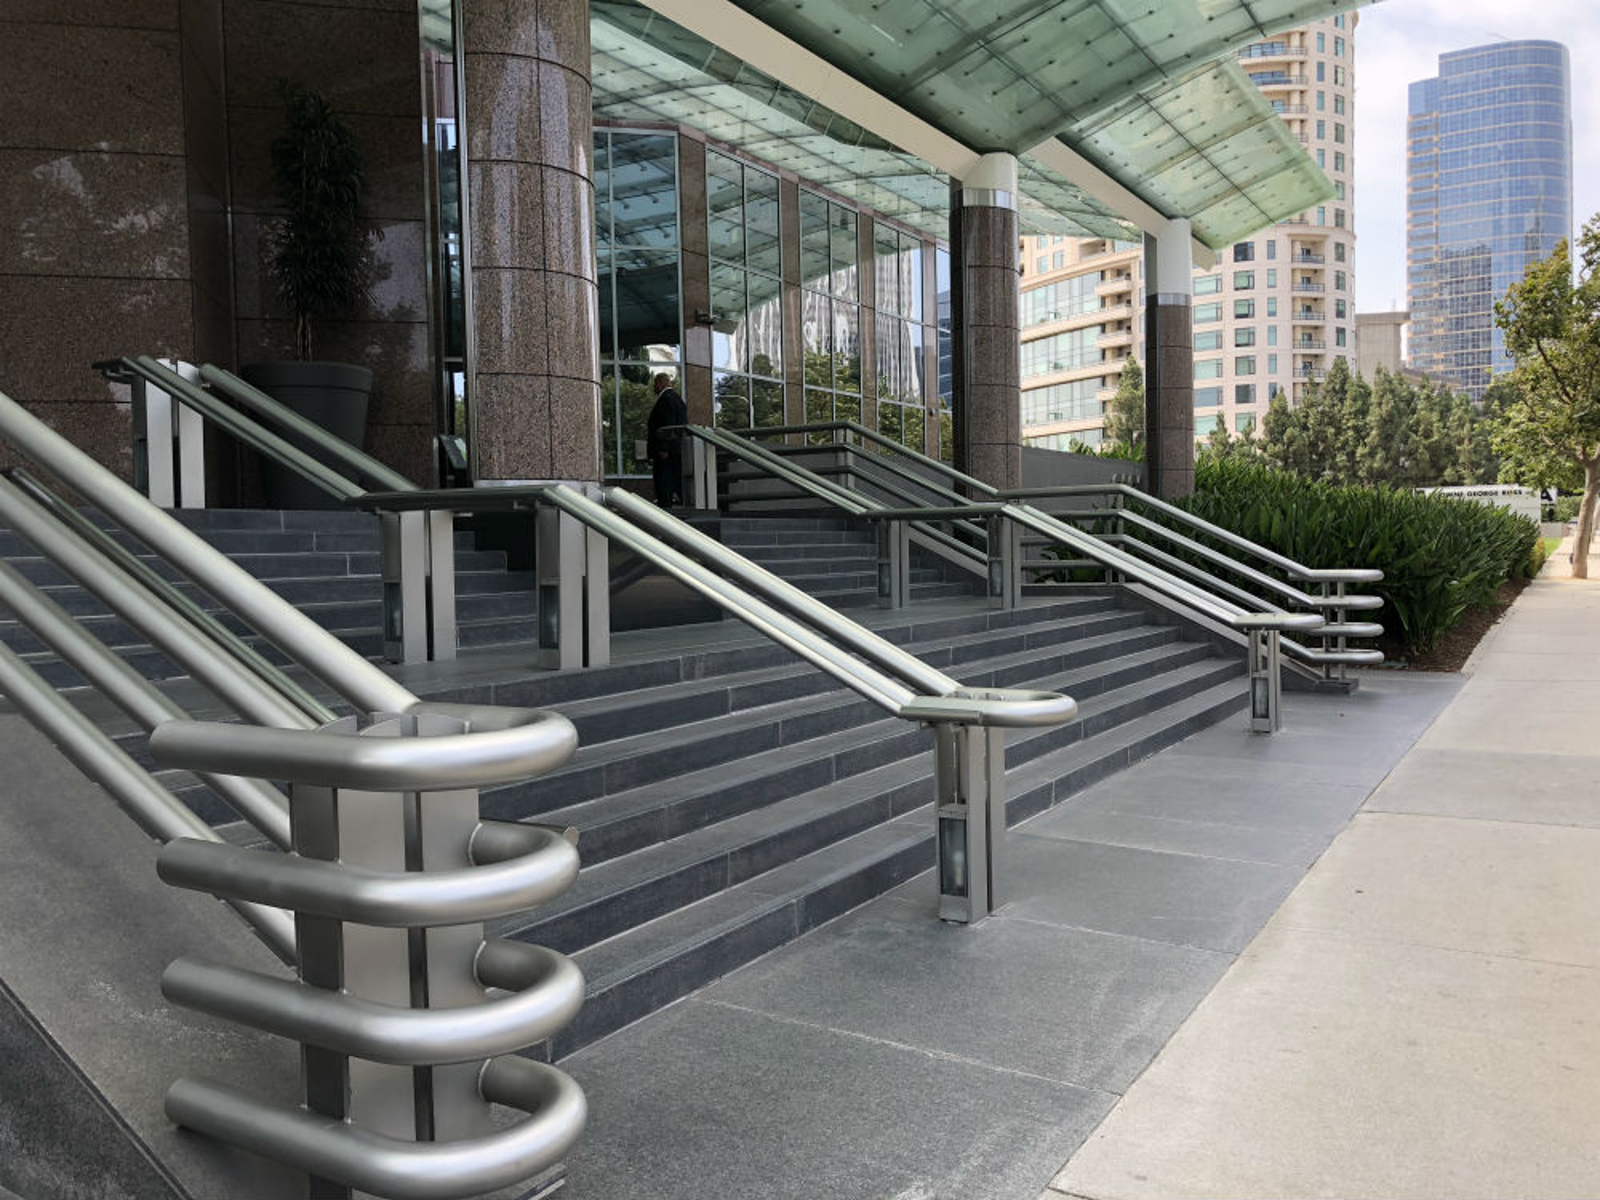 Four railings outside the building because the middle one was destroyed during filming.